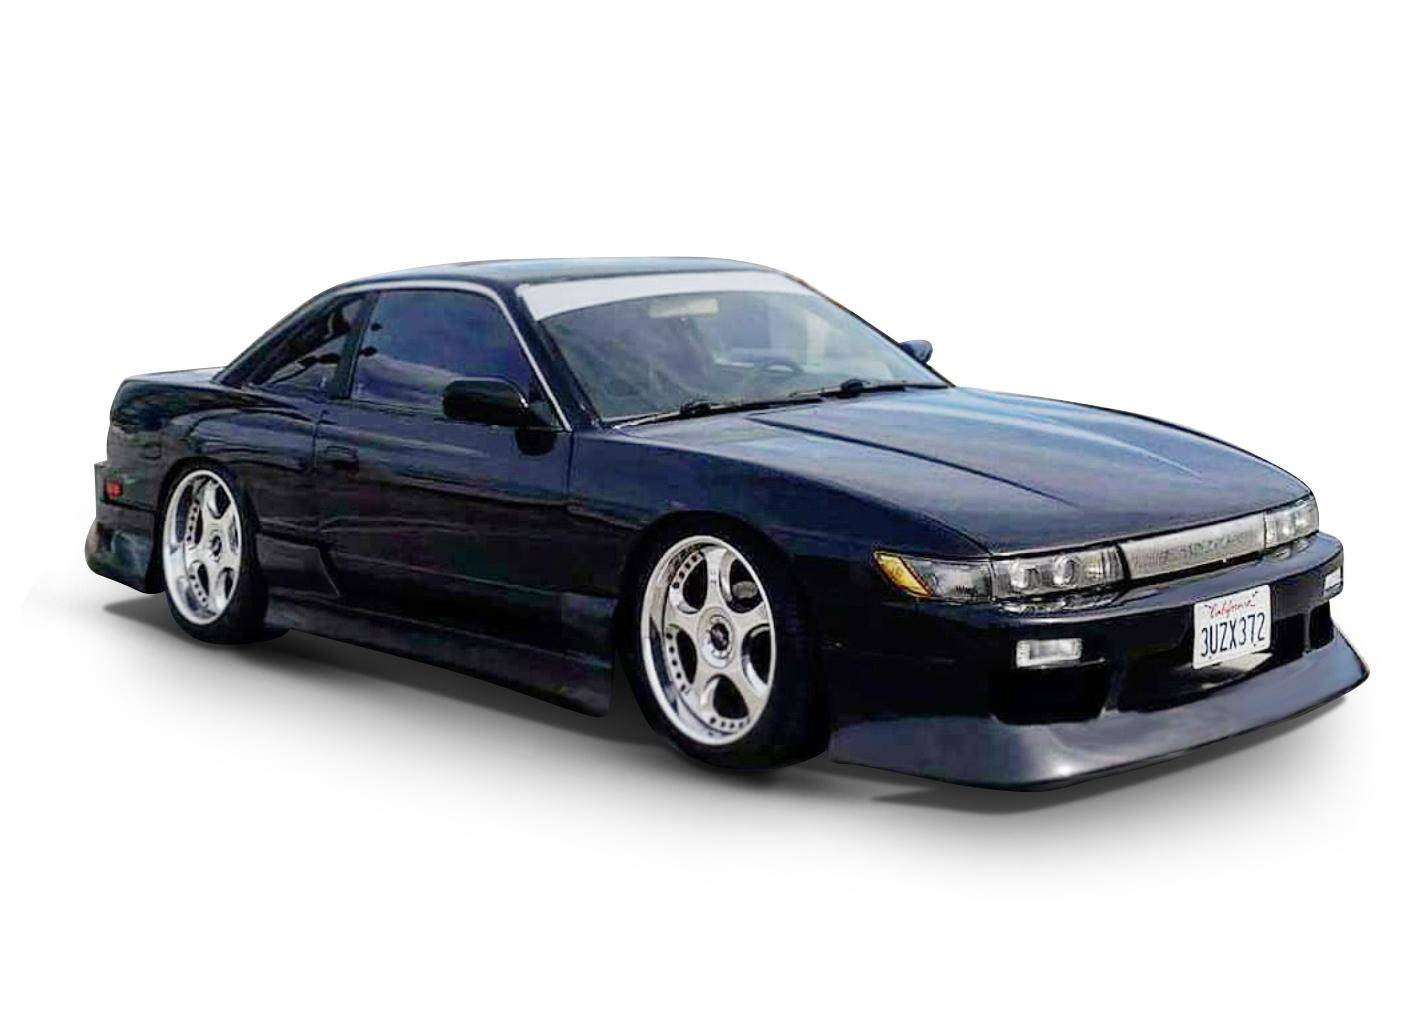 Details about KBD Body Kit Bsport Polyurethane Front Bumper Fits Nissan  240SX S13 Silvia 89-94